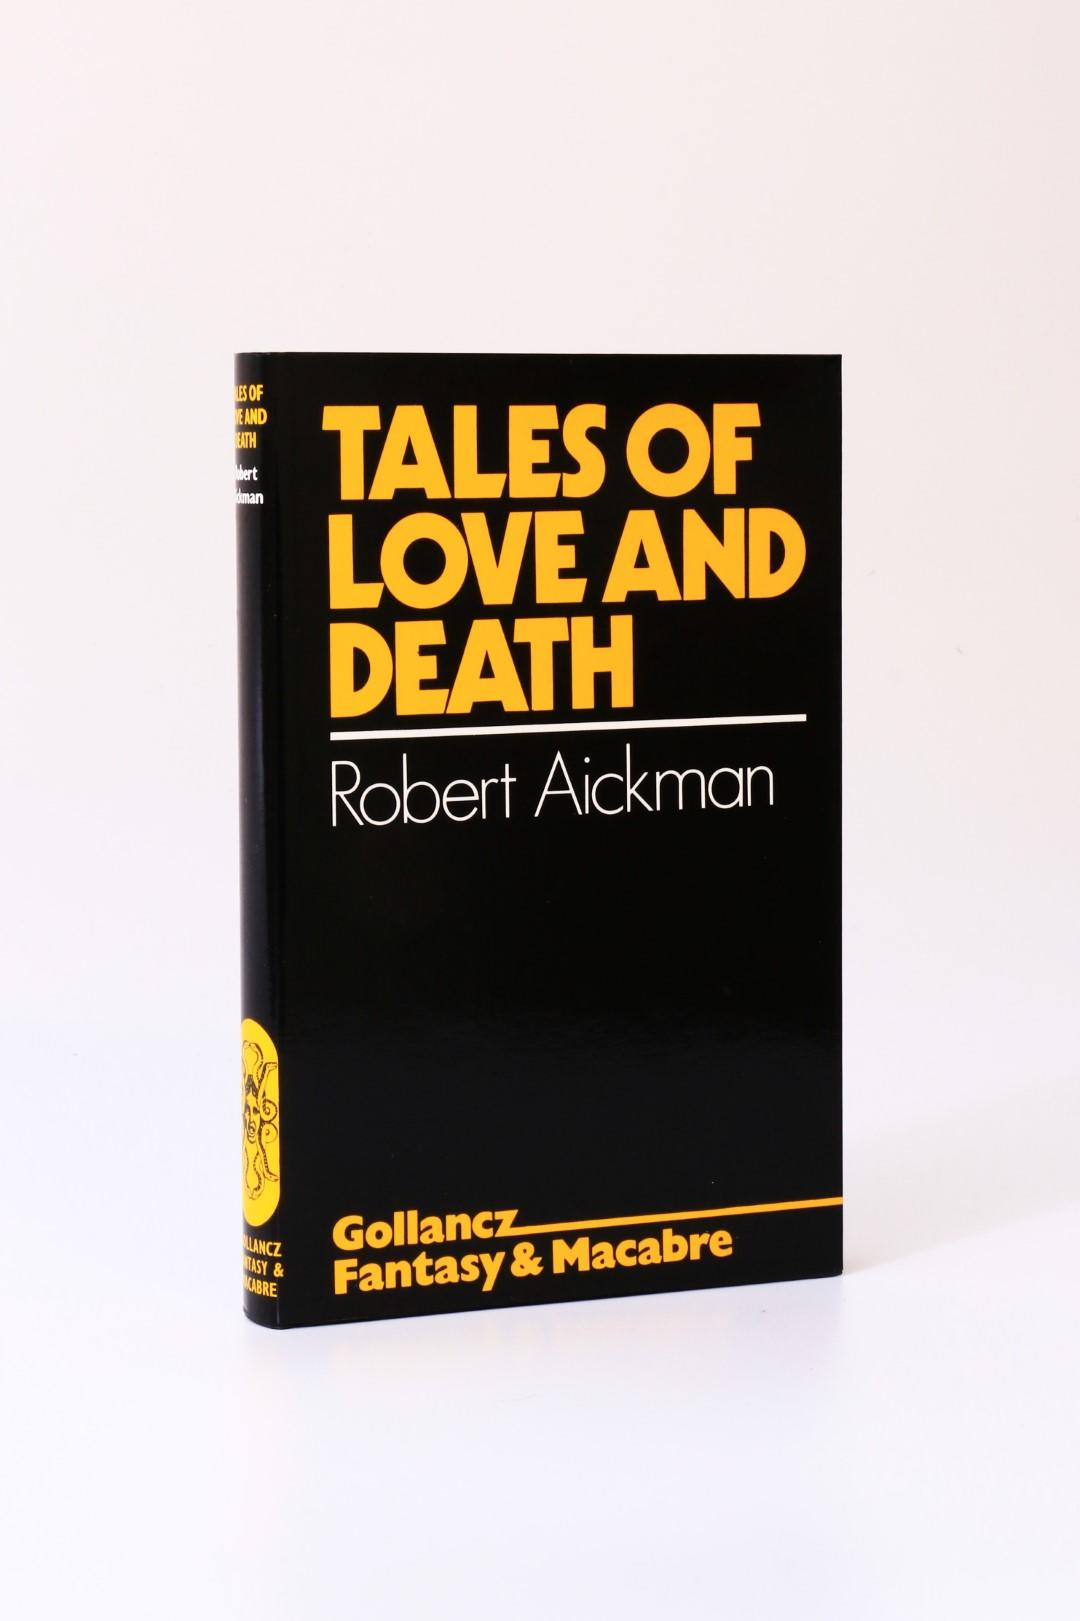 Robert Aickman - Tales of Love and Death - Gollancz, 1977, First Edition.